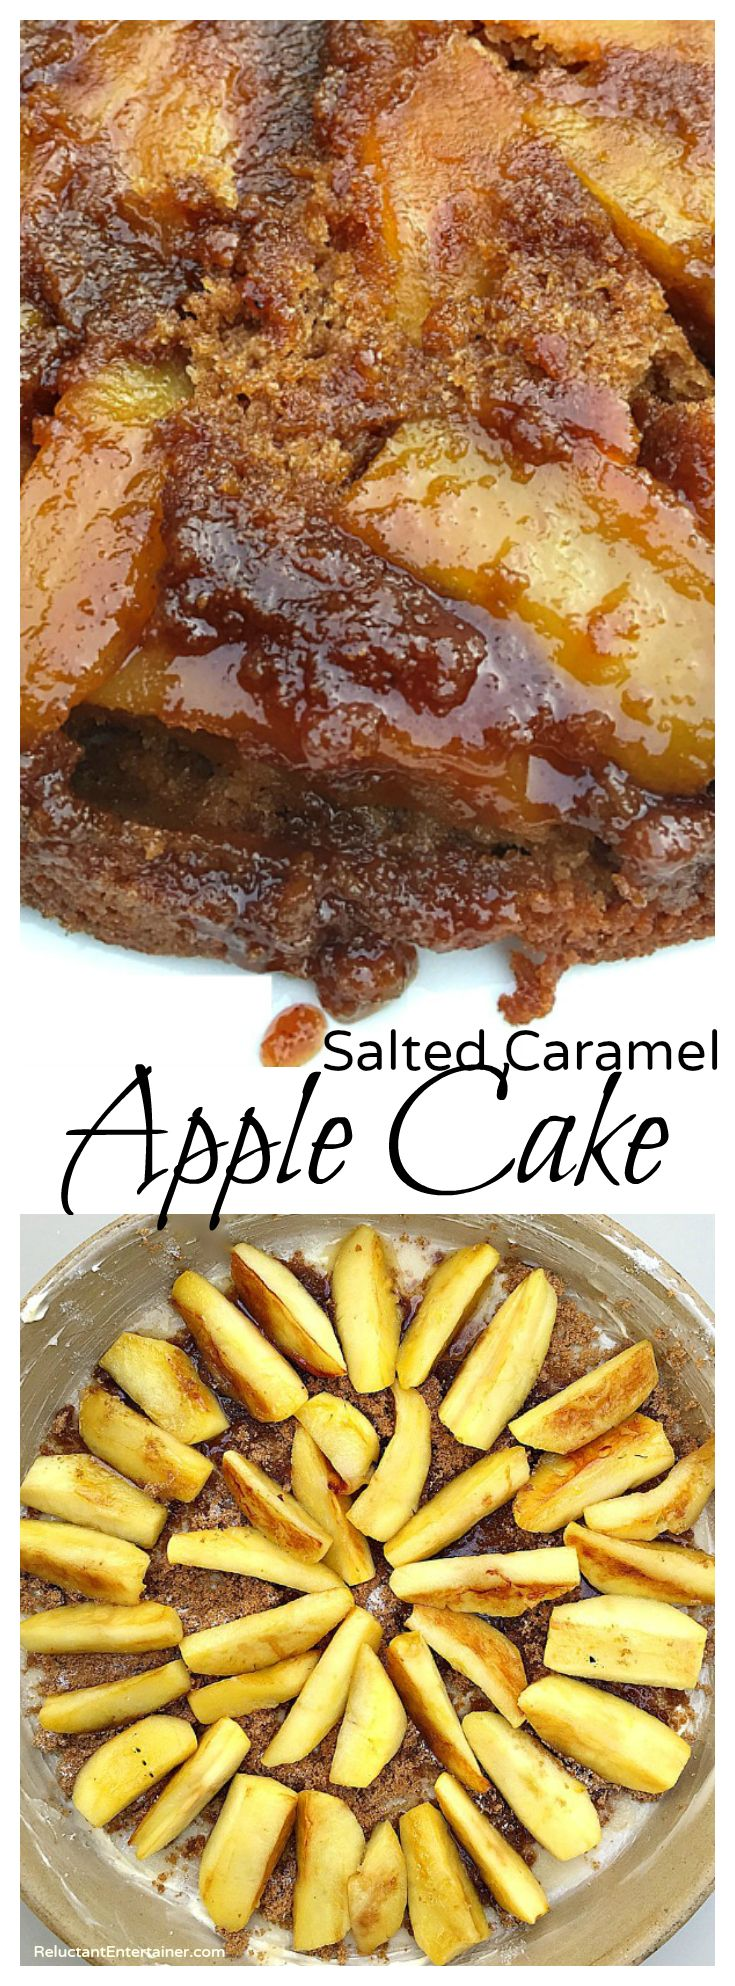 Salted Caramel Apple Cake for holiday entertaining! at ReluctantEntertainer.com